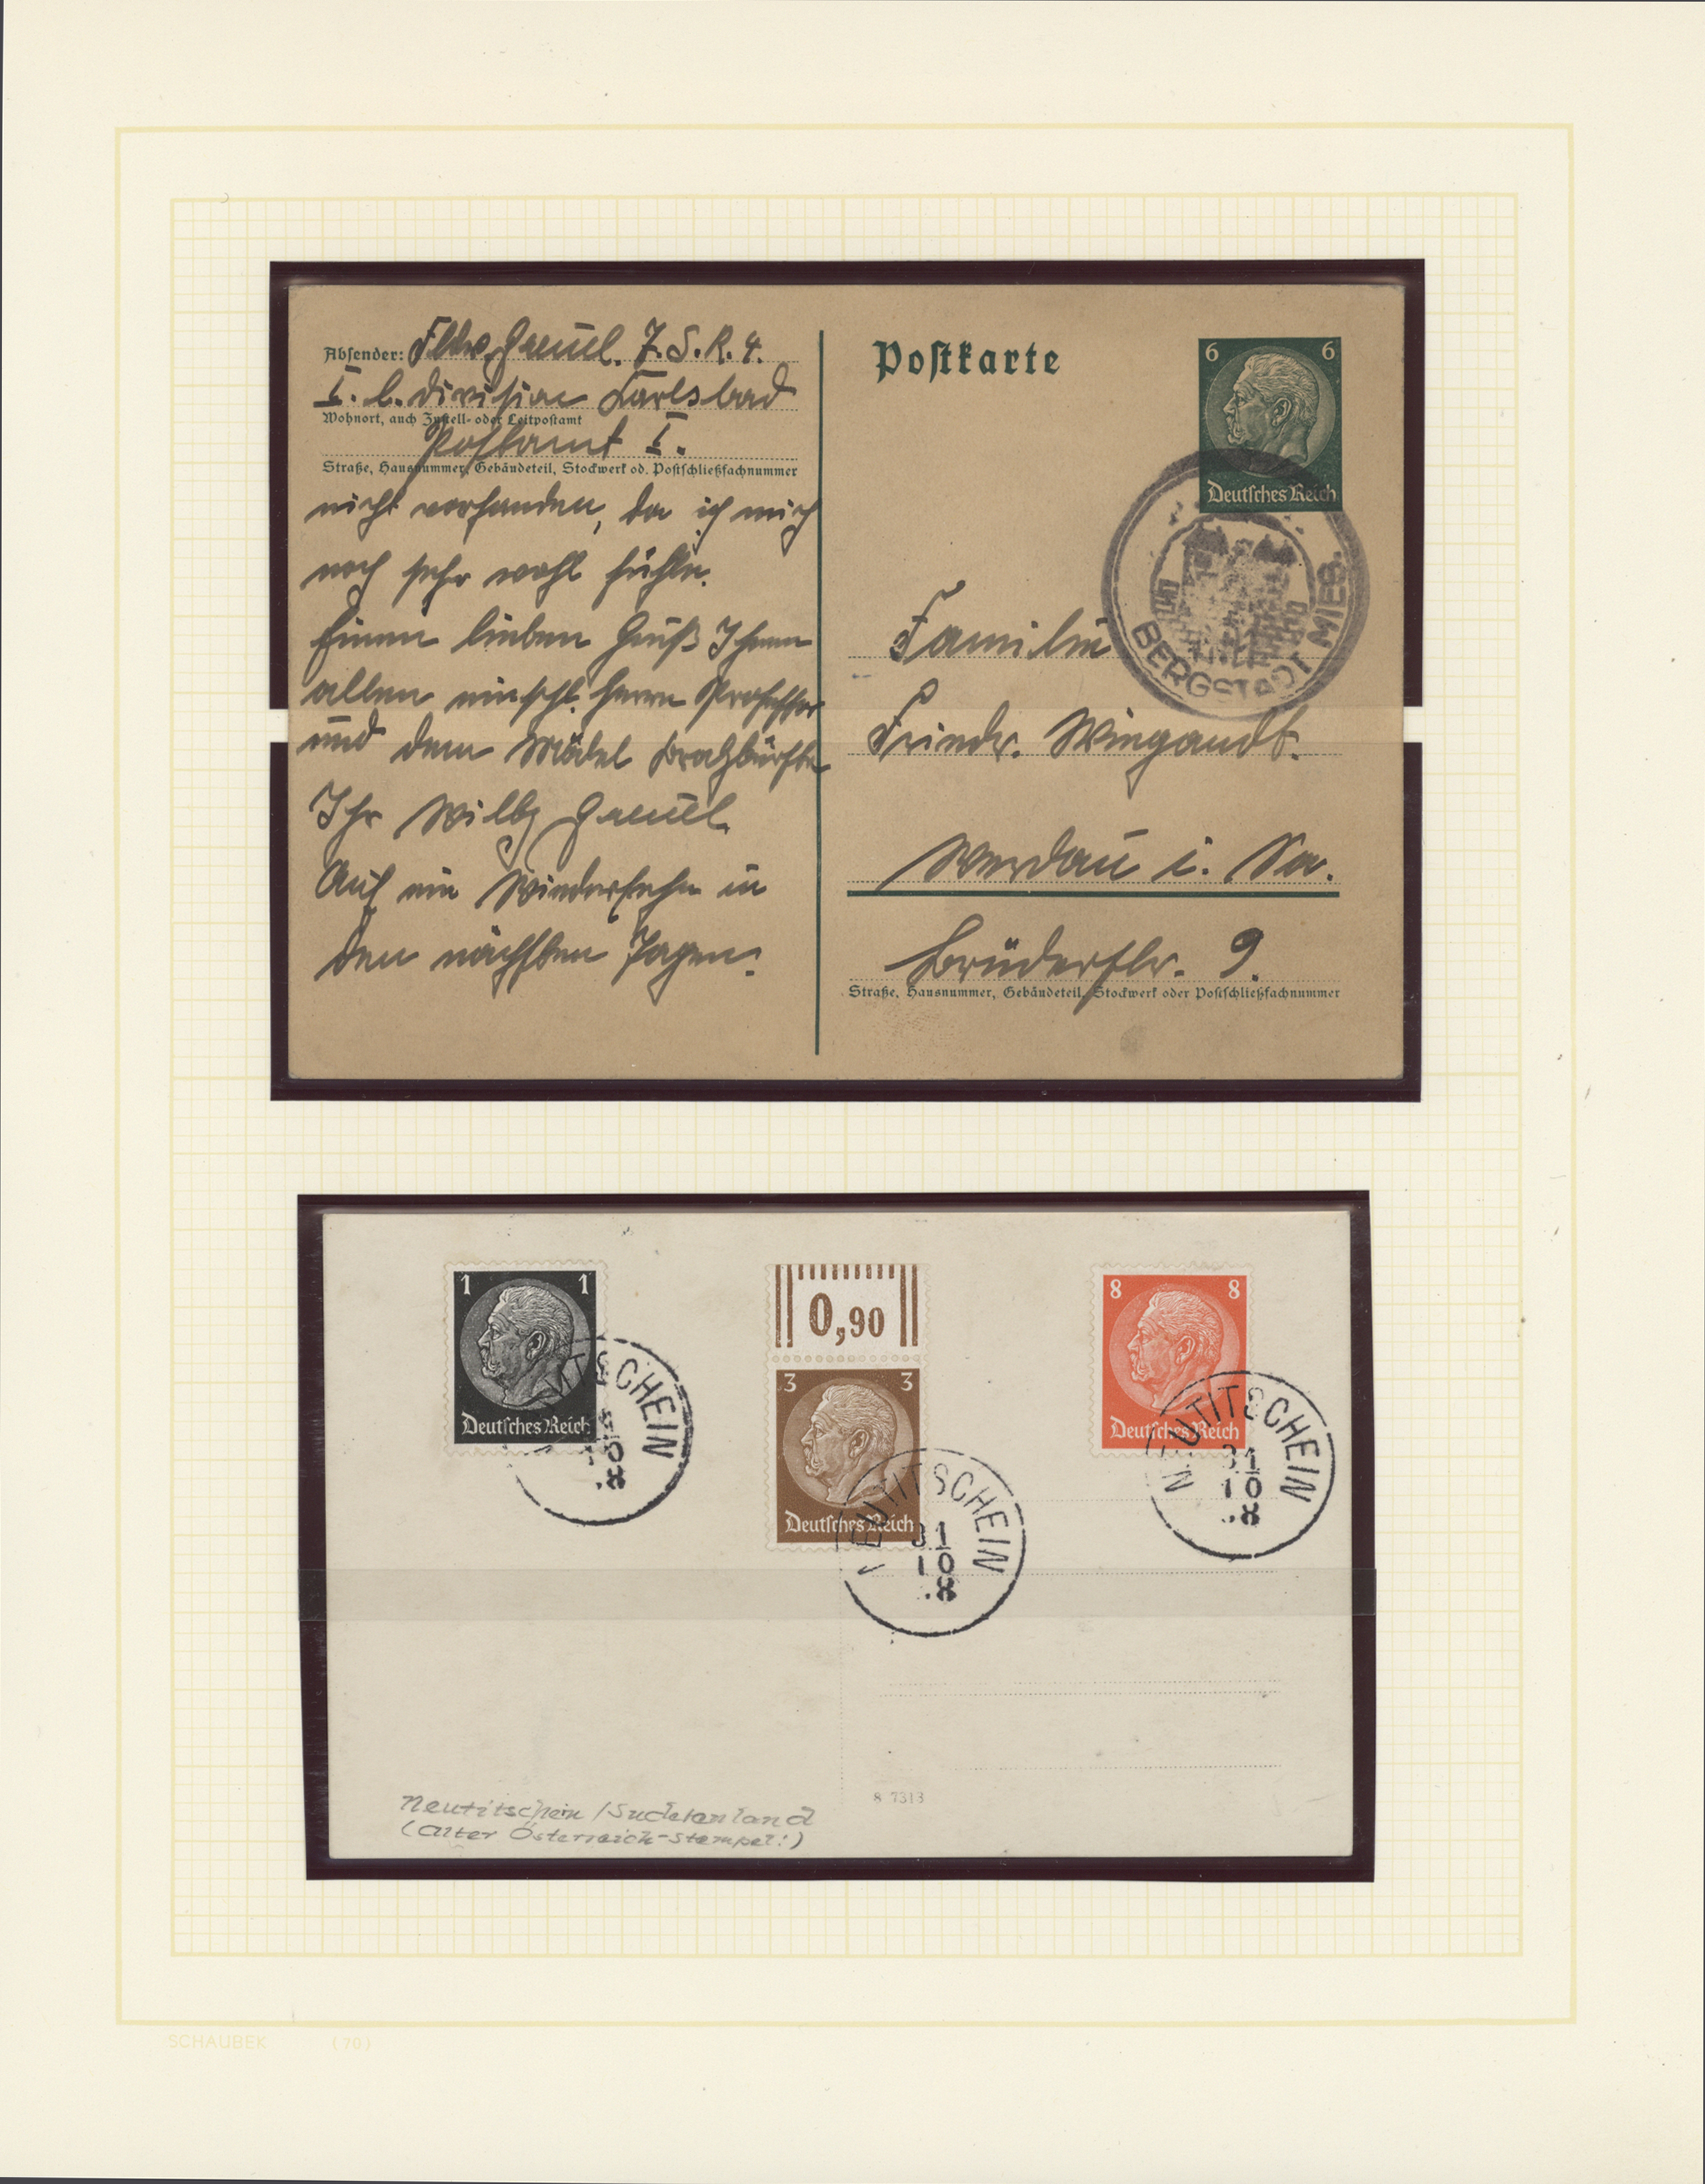 Lot 35037 - deutsche besetzung ii. wk  -  Auktionshaus Christoph Gärtner GmbH & Co. KG Collections Germany,  Collections Supplement, Surprise boxes #39 Day 7